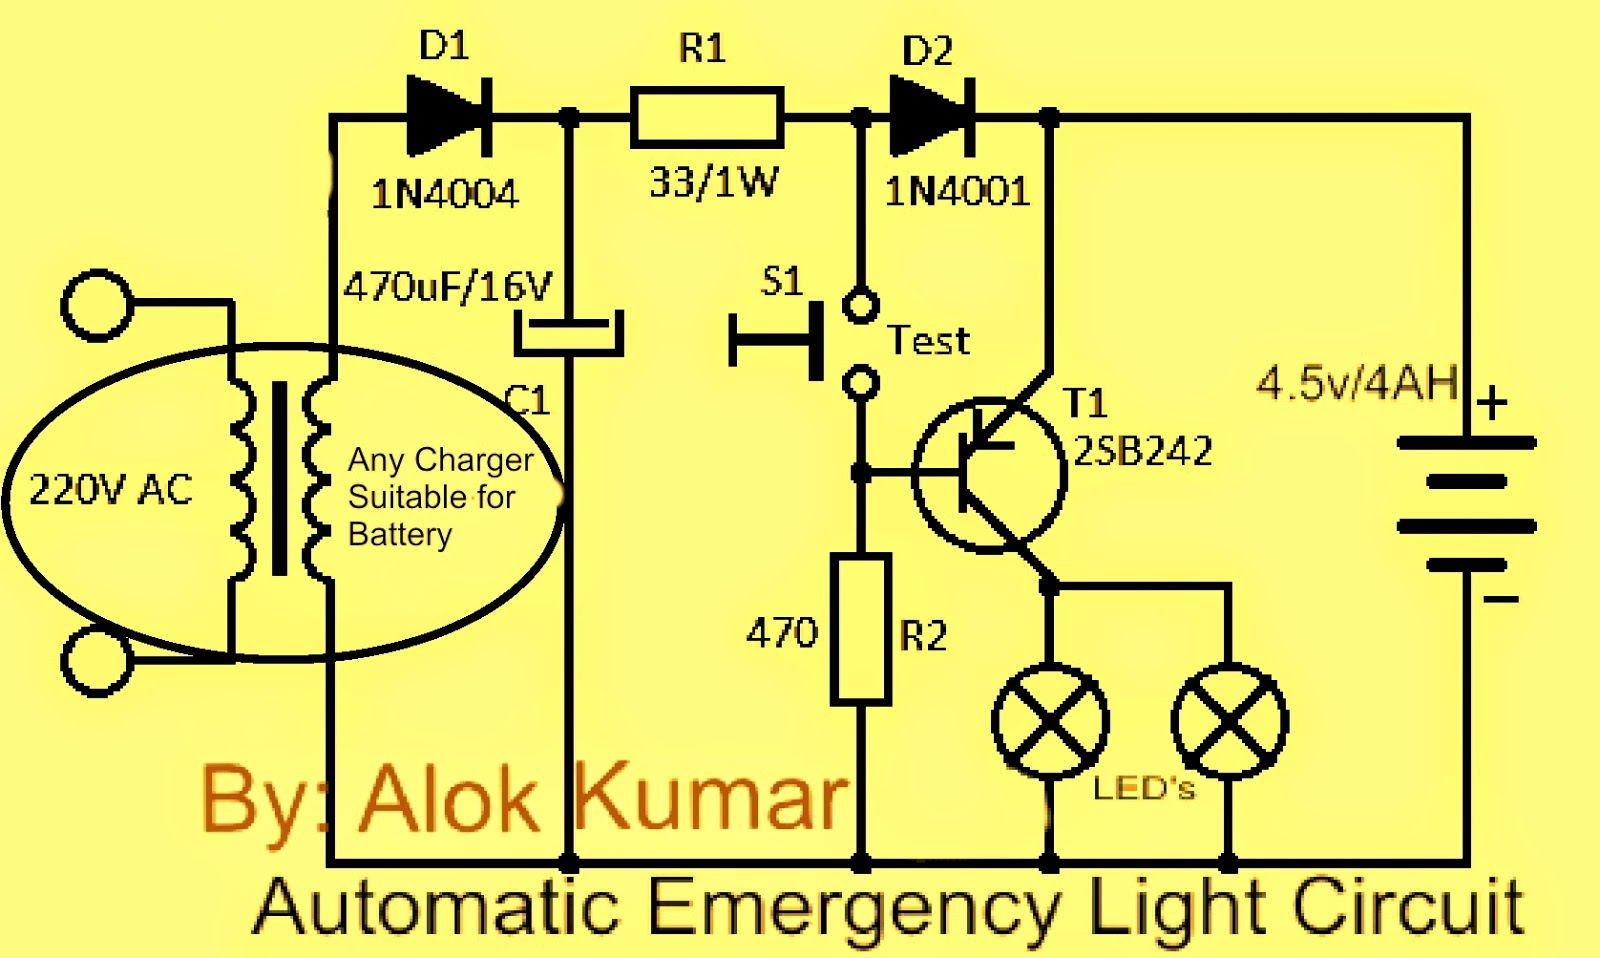 automatic emergency light circuit electronic circuits, transformerless power supply, led drivers